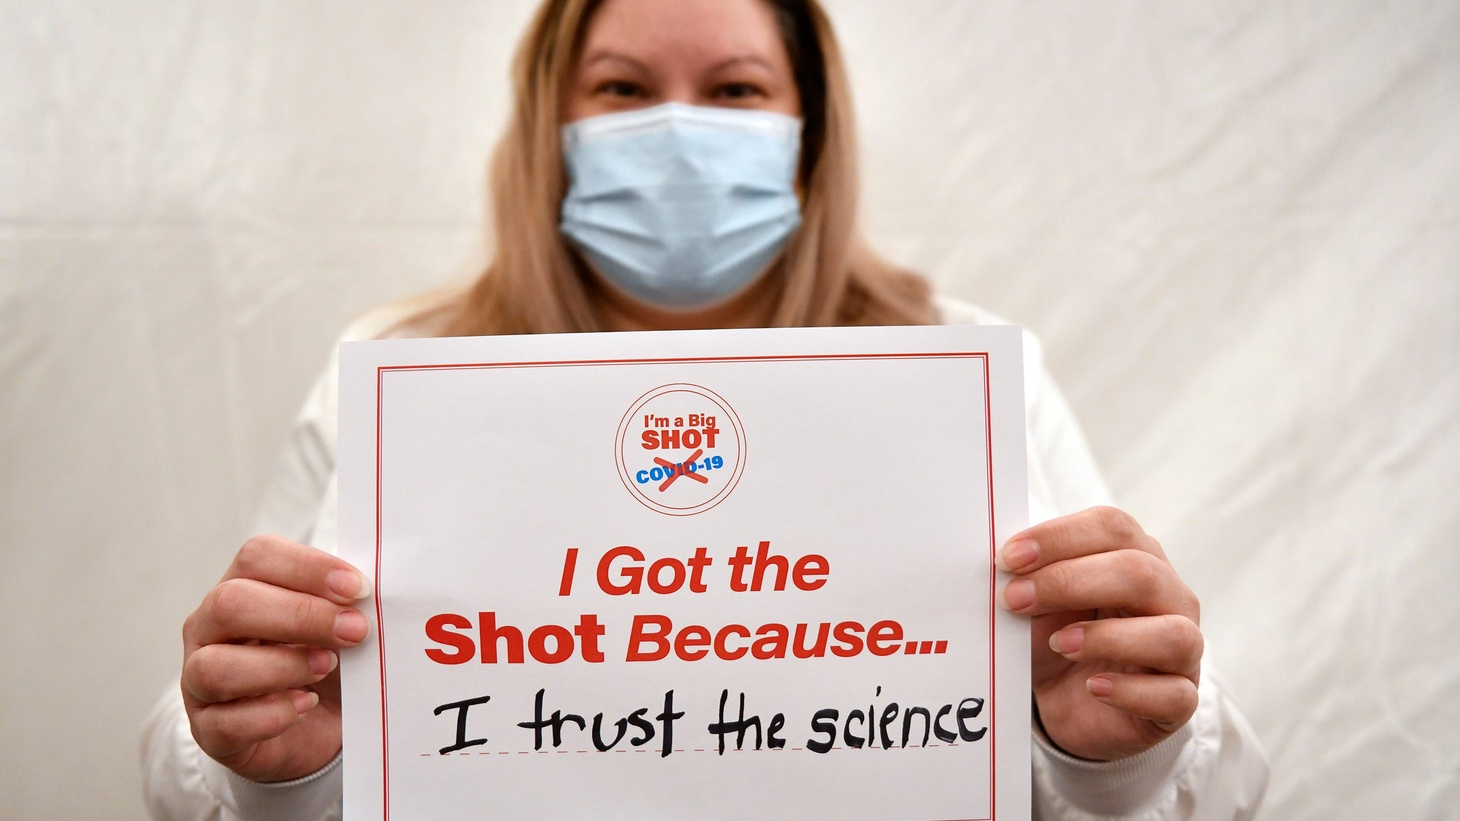 """Cathy Vasquez, a clinical research nurse at Inspira Medical Center Vineland, holds a sign that says """"I got the shot because I trust the science,"""" after receiving a COVID-19 vaccination in Vineland, N.J., Friday, Dec. 18, 2020."""